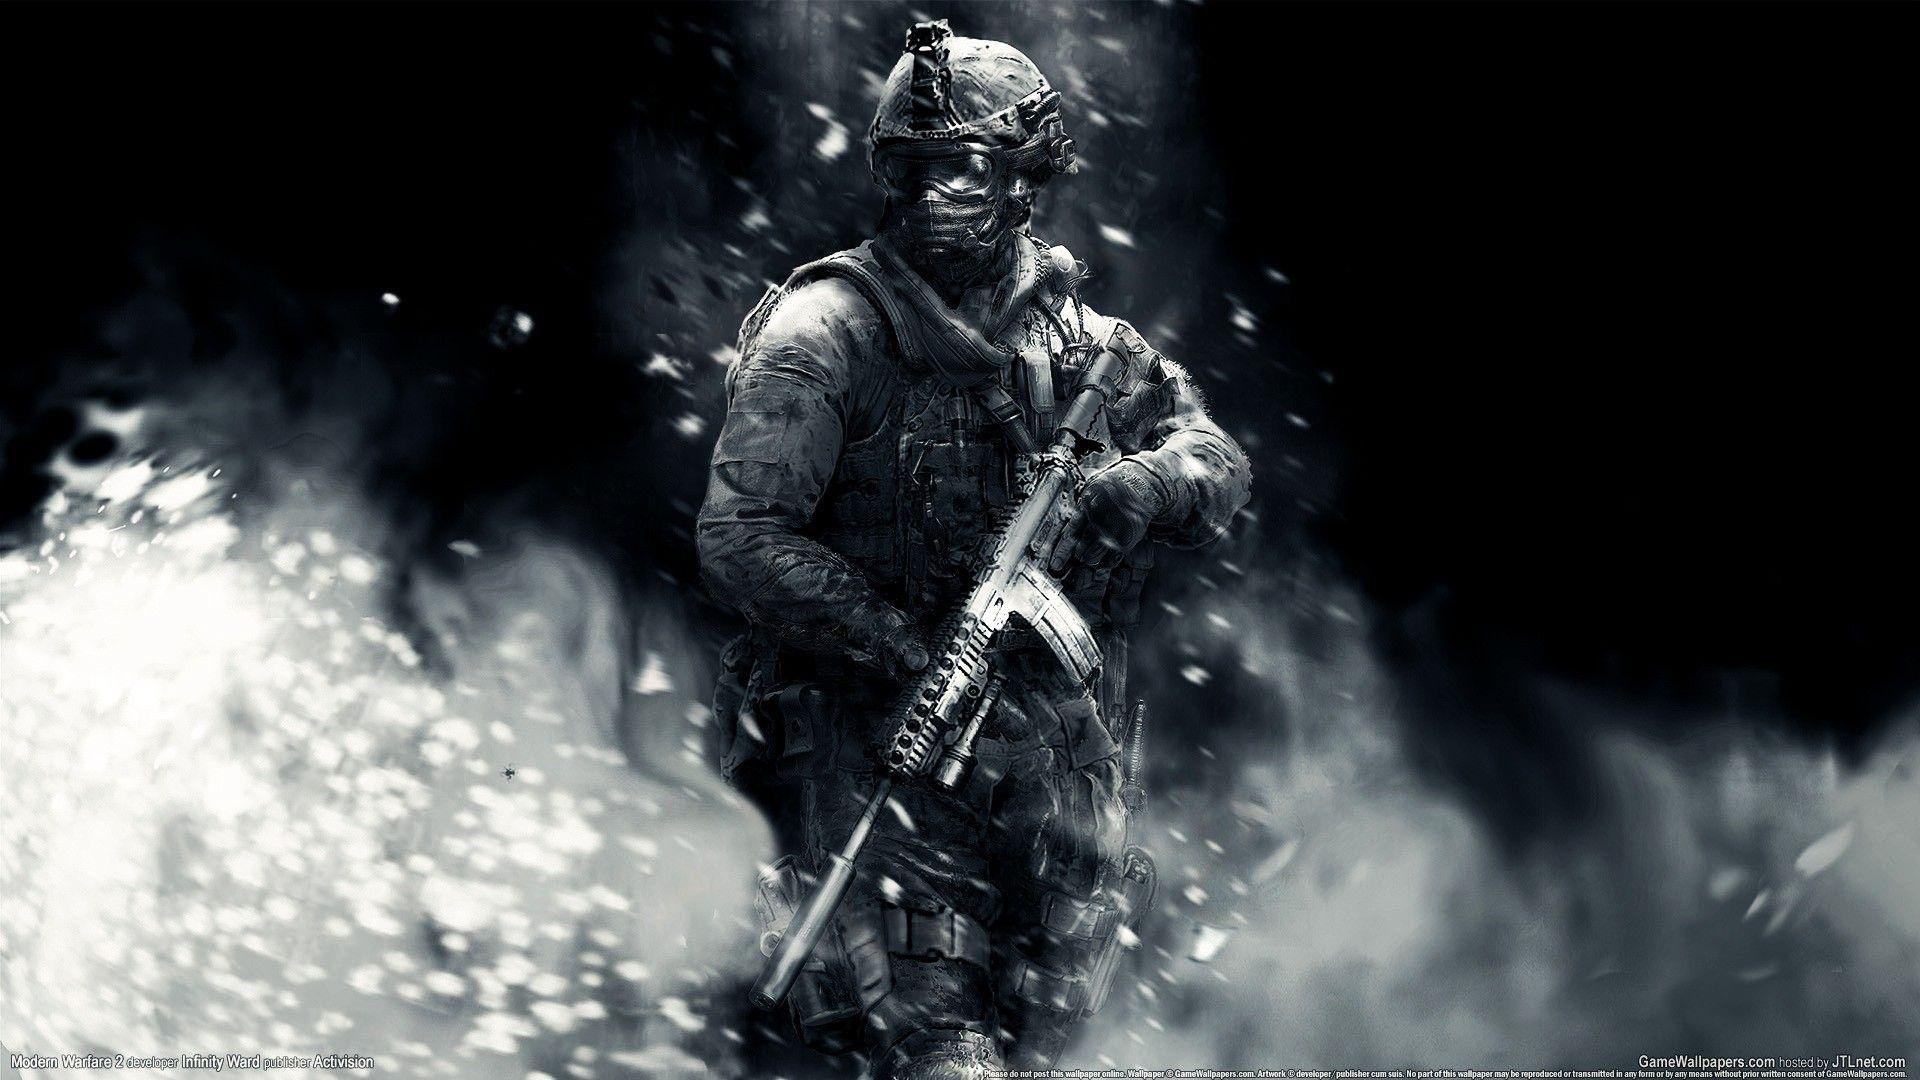 FHDQ Wallpapers: Call Of Duty Wallpapers, Call Of Duty Photos For ...